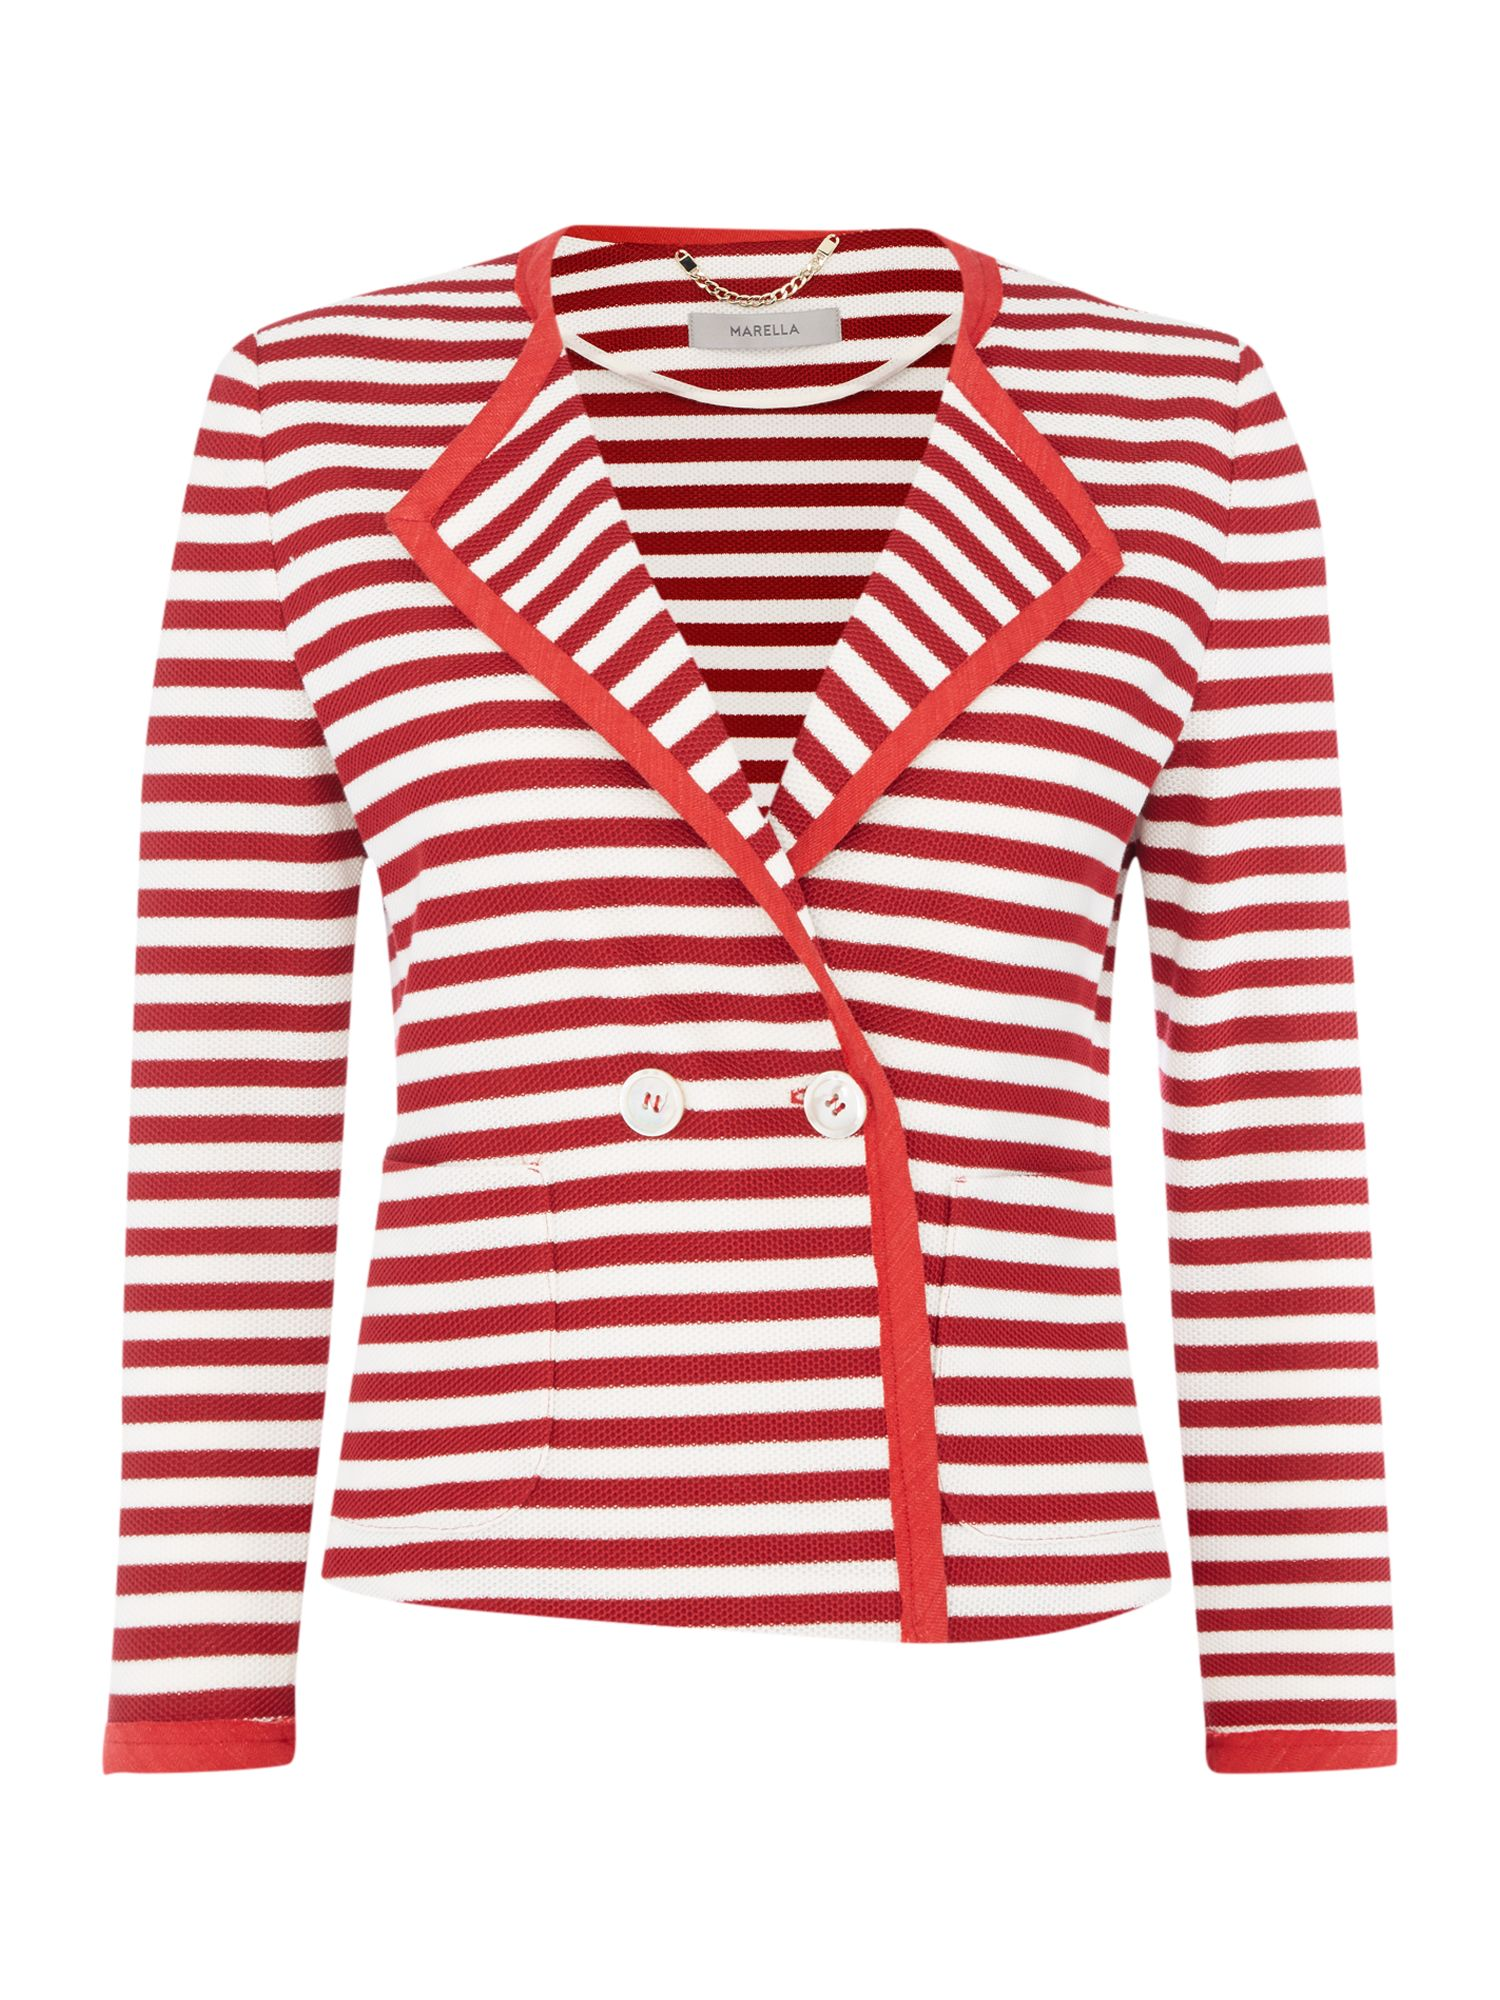 Marella ESTE Longsleeve cropped striped jacket, Red